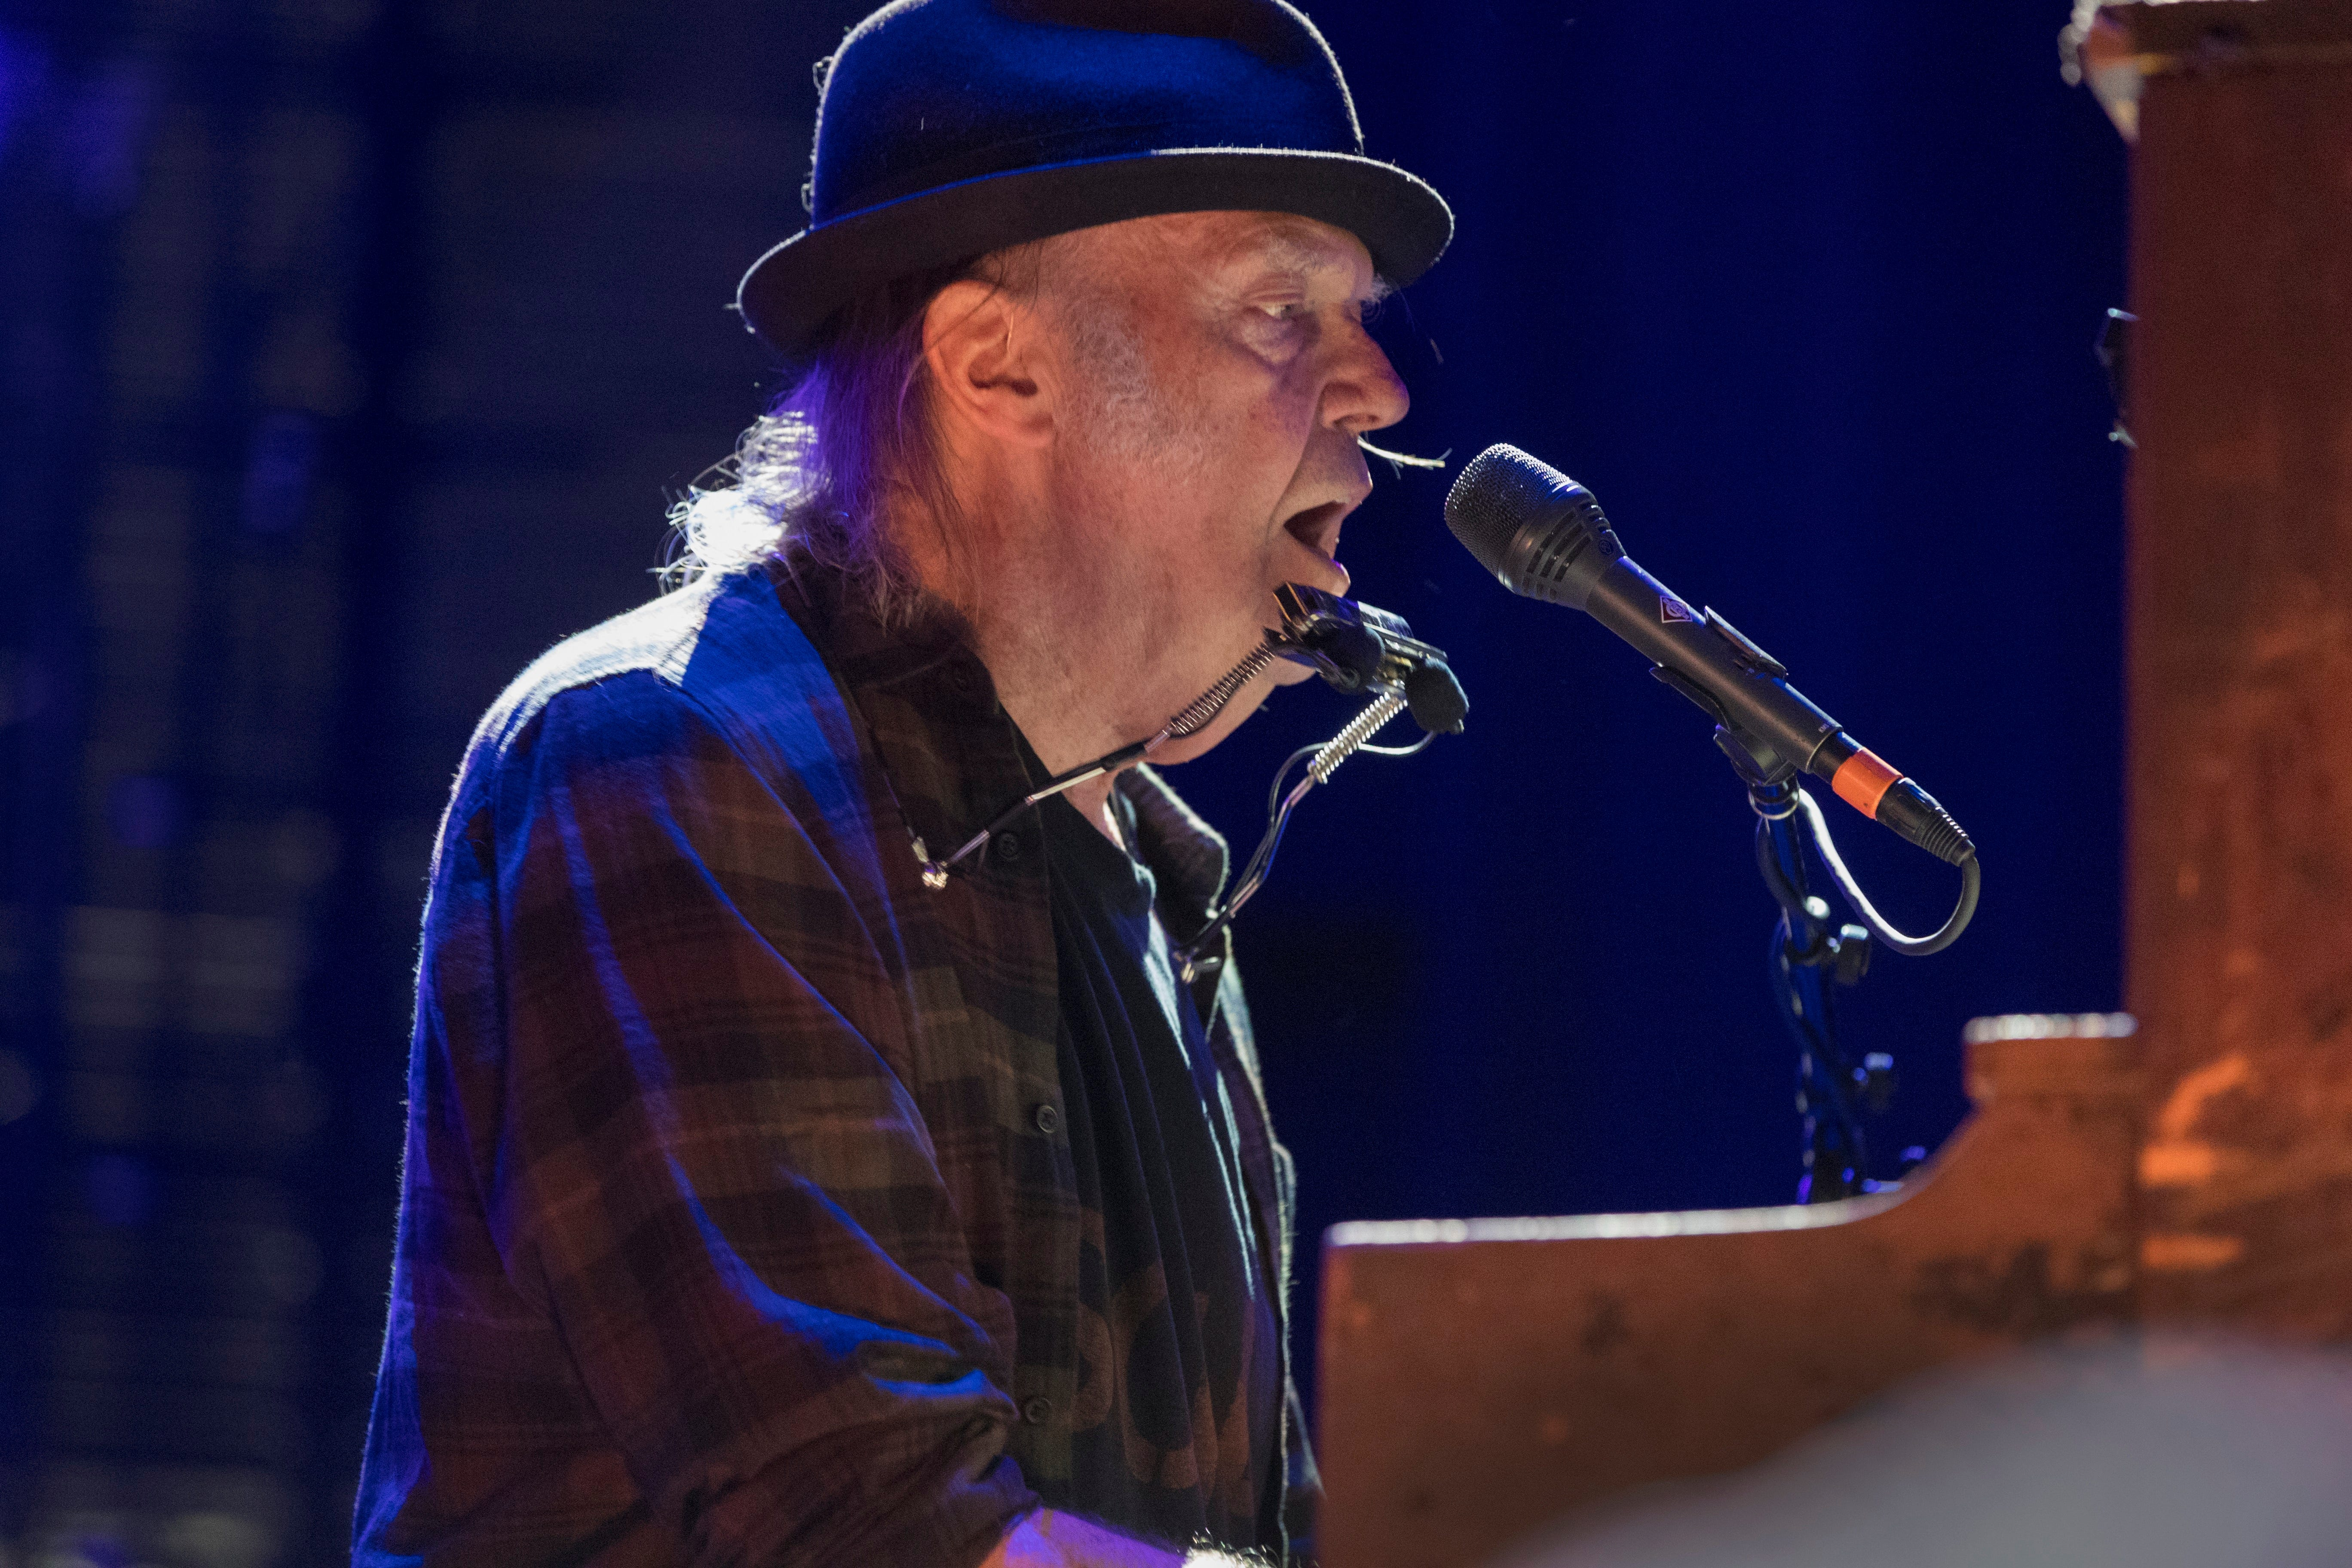 Neil Young is touring old arenas with Crazy Horse. Milwaukee and Madison may be on the itinerary